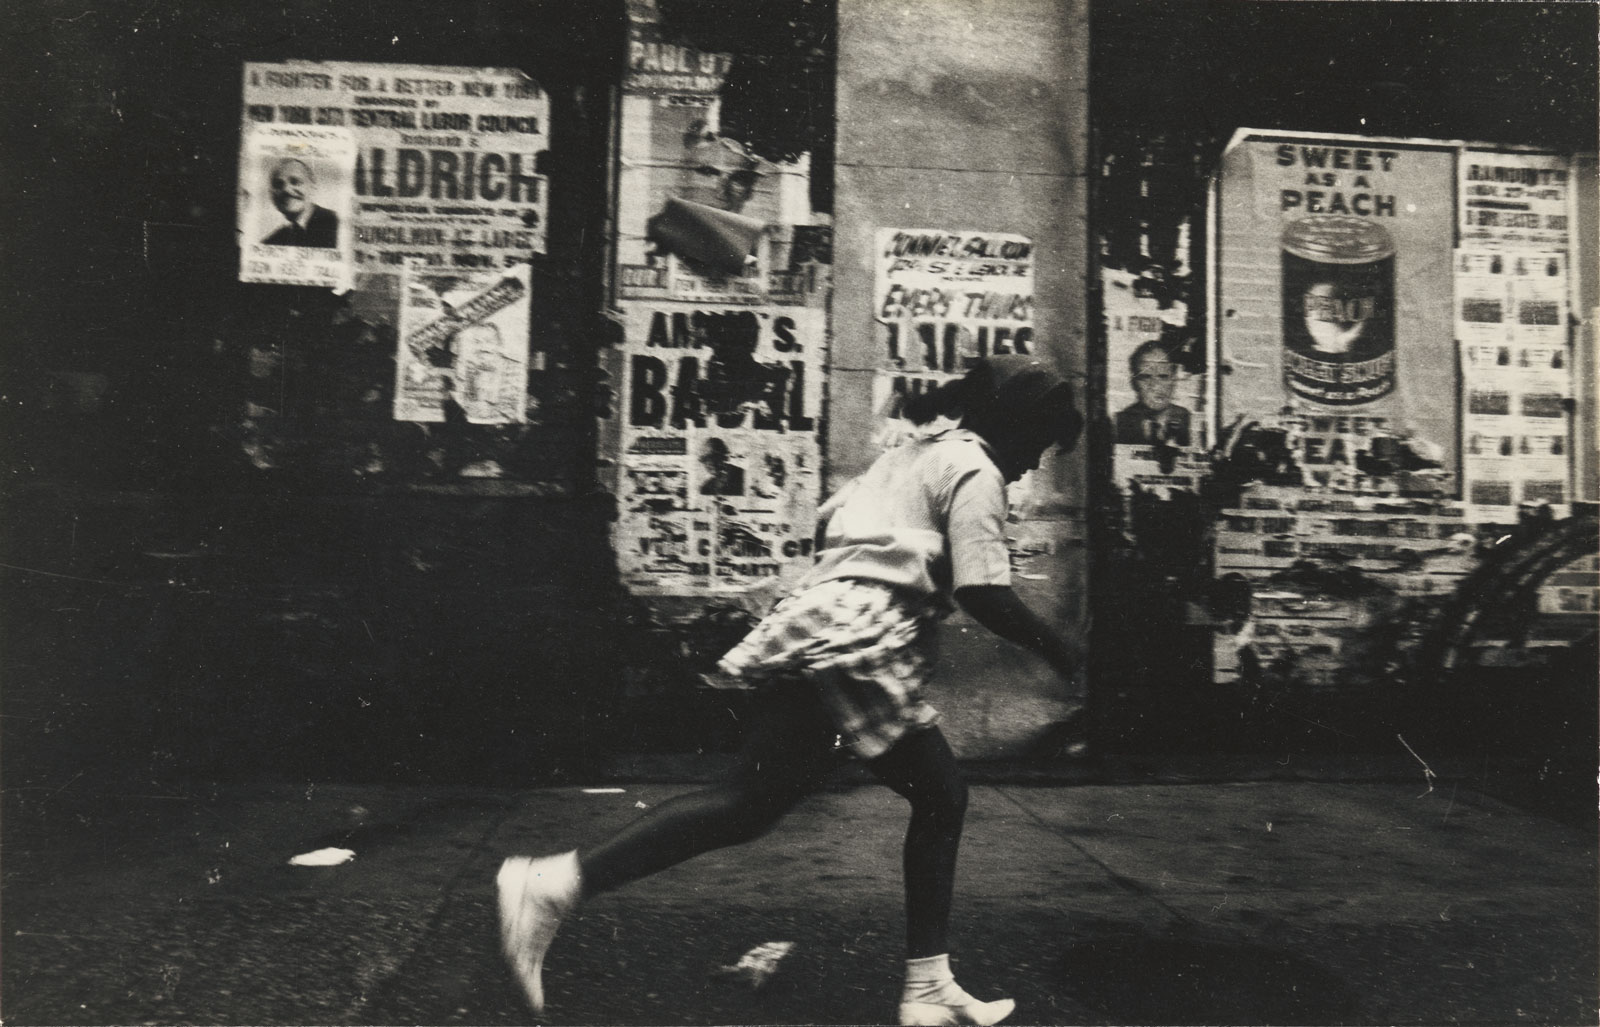 A girl caught in motion running, behind her the peeling posters for Sweet As a Peach and other advertisements